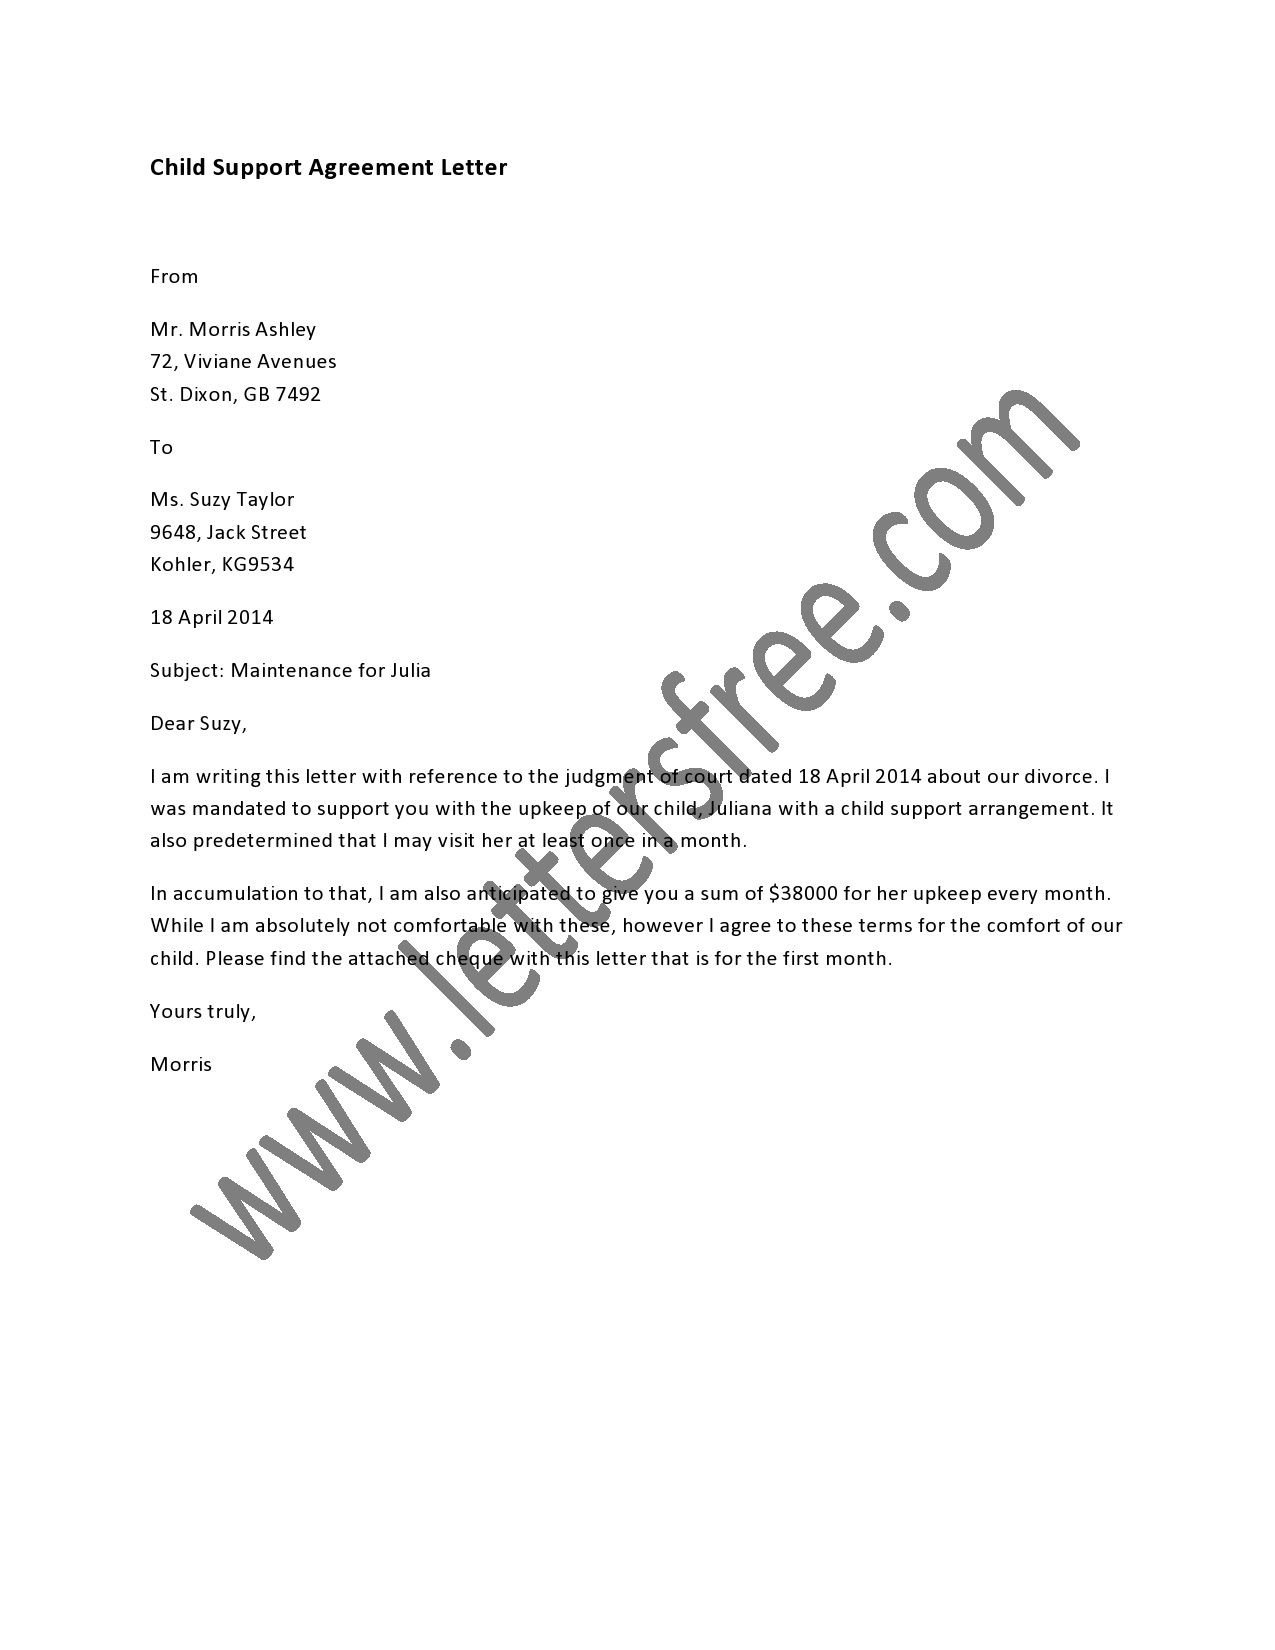 Child Support Agreement Letter A Written Child Support Agreement Between Parents is